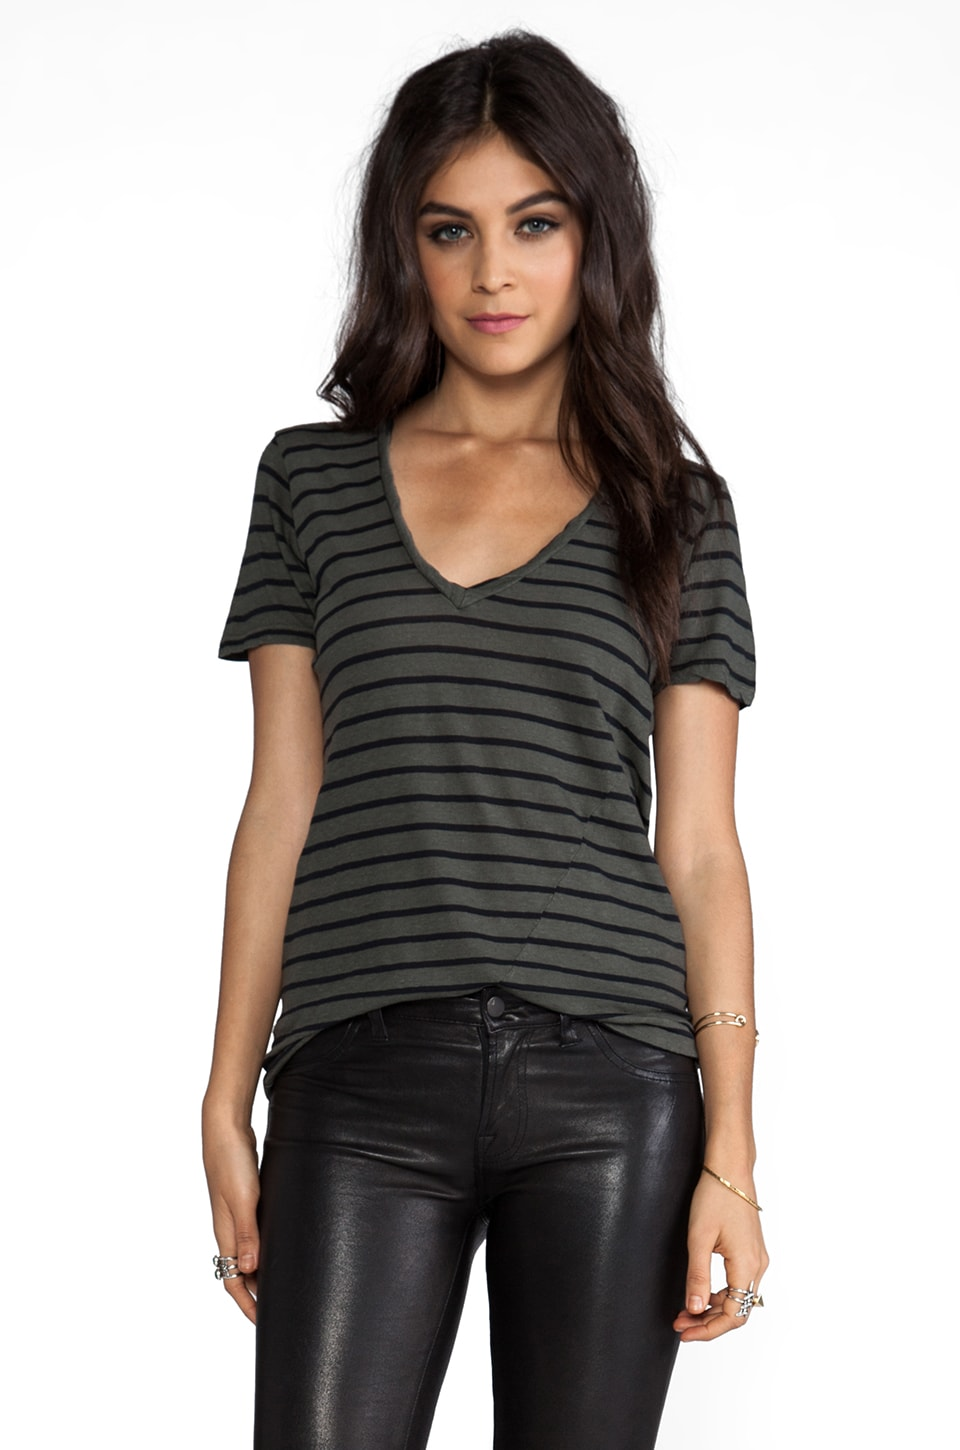 My Line Jezebel Striped V-neck in Army